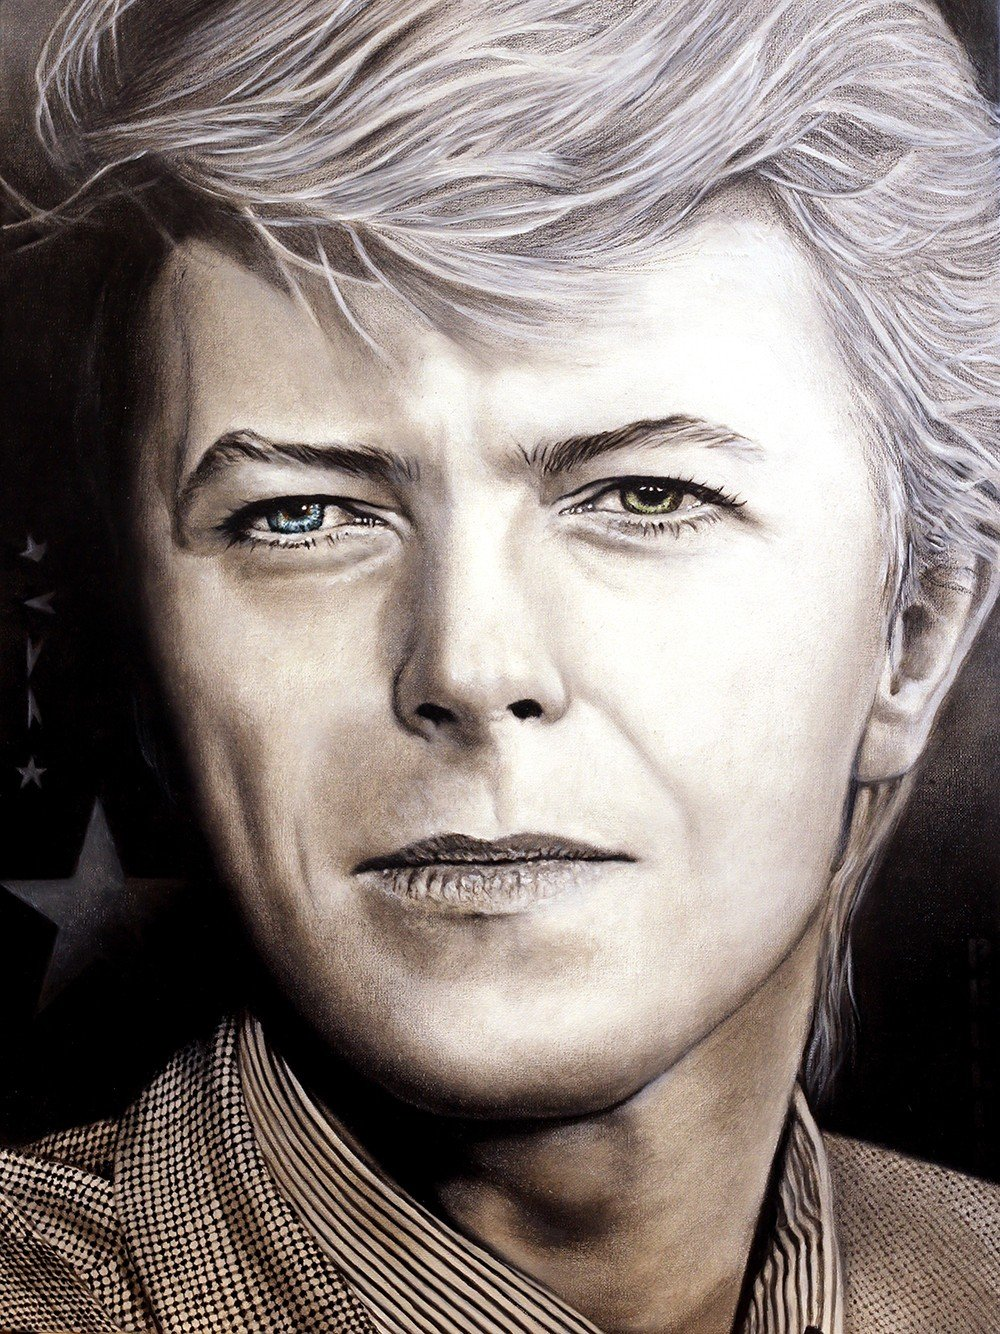 David Bowie | Tribute to Bowie